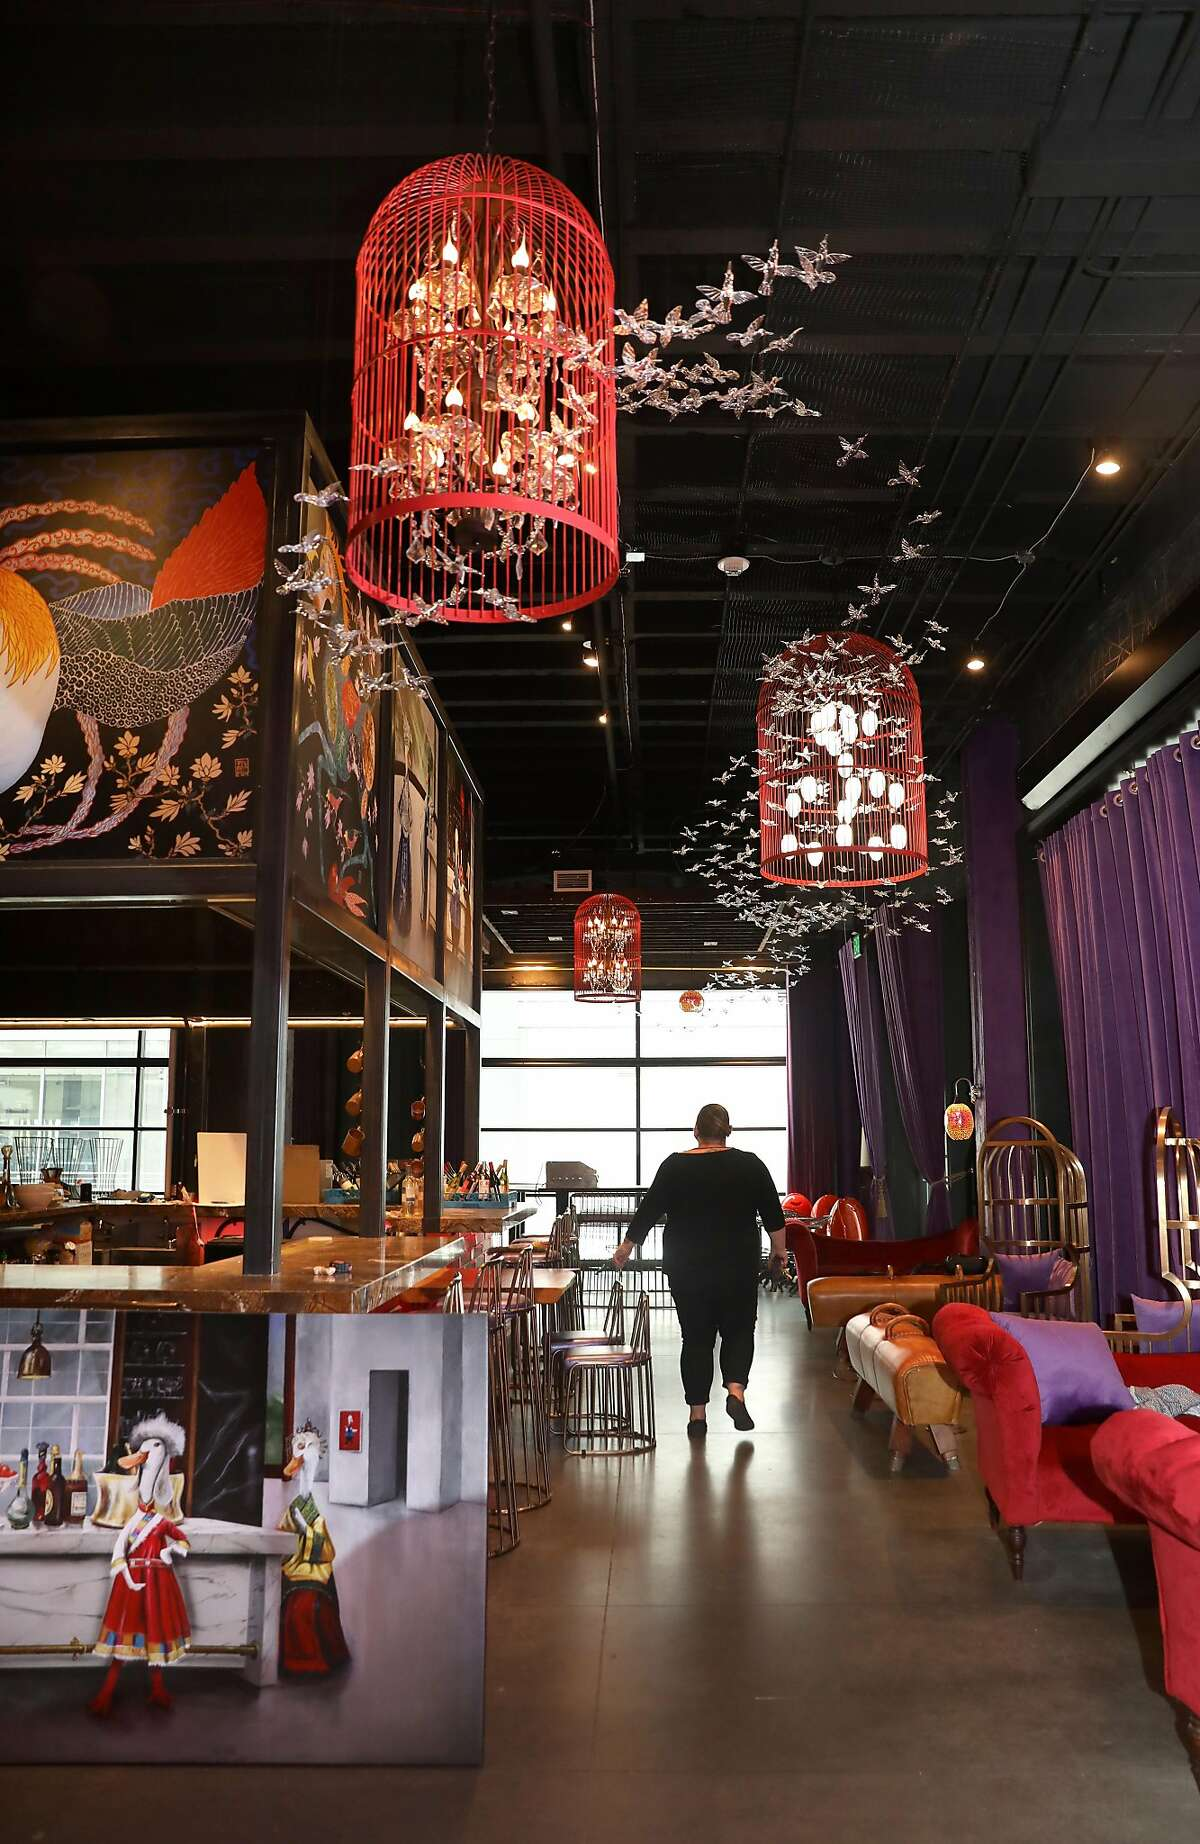 Dim sum bar, Northern Duck, is the restaurant which is part of the expansion across the hall from The Market on Tuesday, July 28, 2020, in San Francisco, Calif.